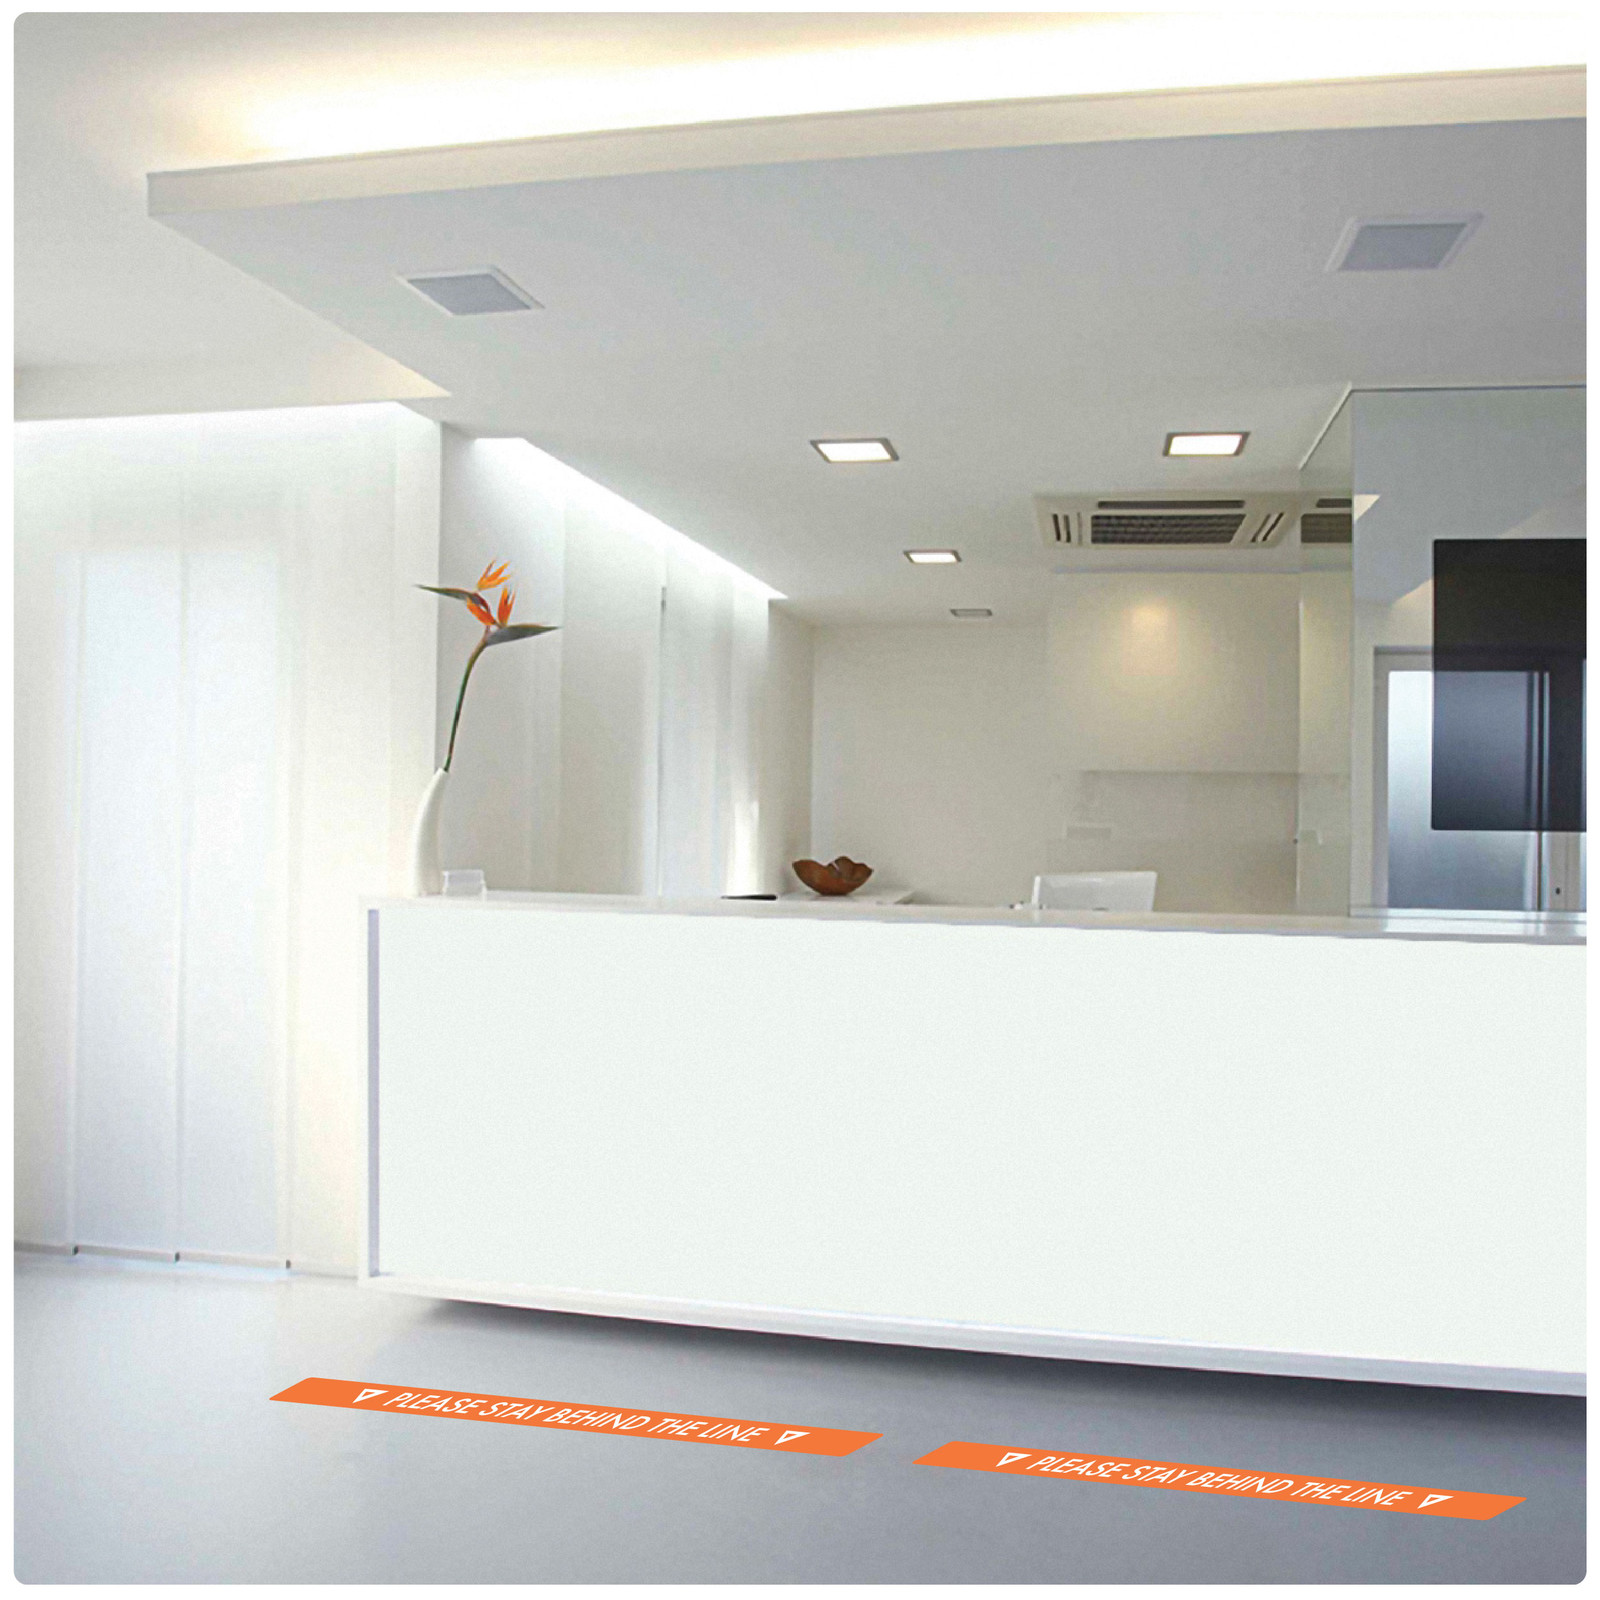 contemporary social distancing floor sticker for tiles, laminate and wood floor 2 lines Self-adhesive Corona virus floor sticker to help social distancing.